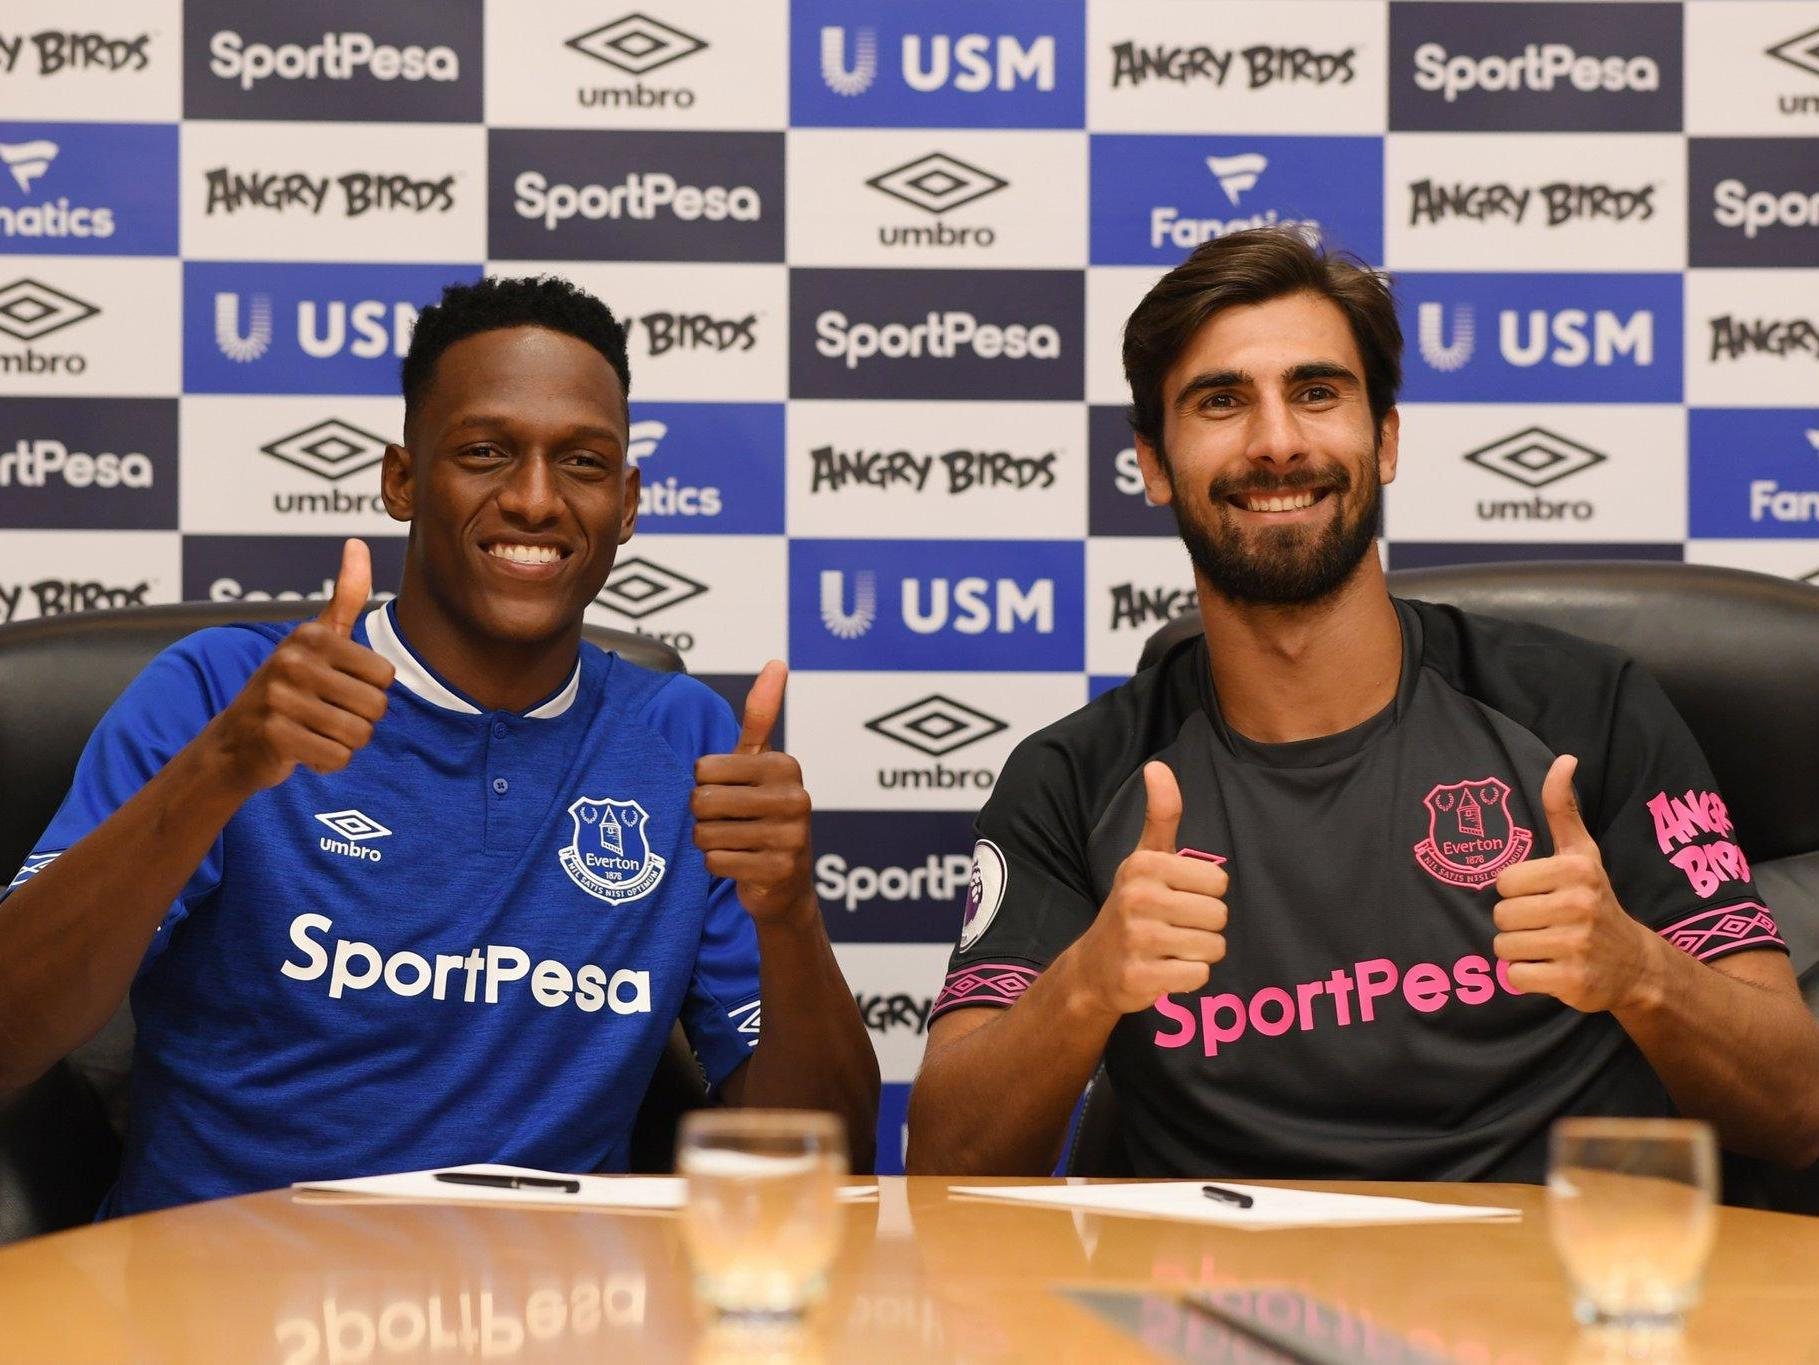 Everton transfer news: Club sign Bernard on free transfer and £27m Yerry Mina as Andre Gomez joins on loan